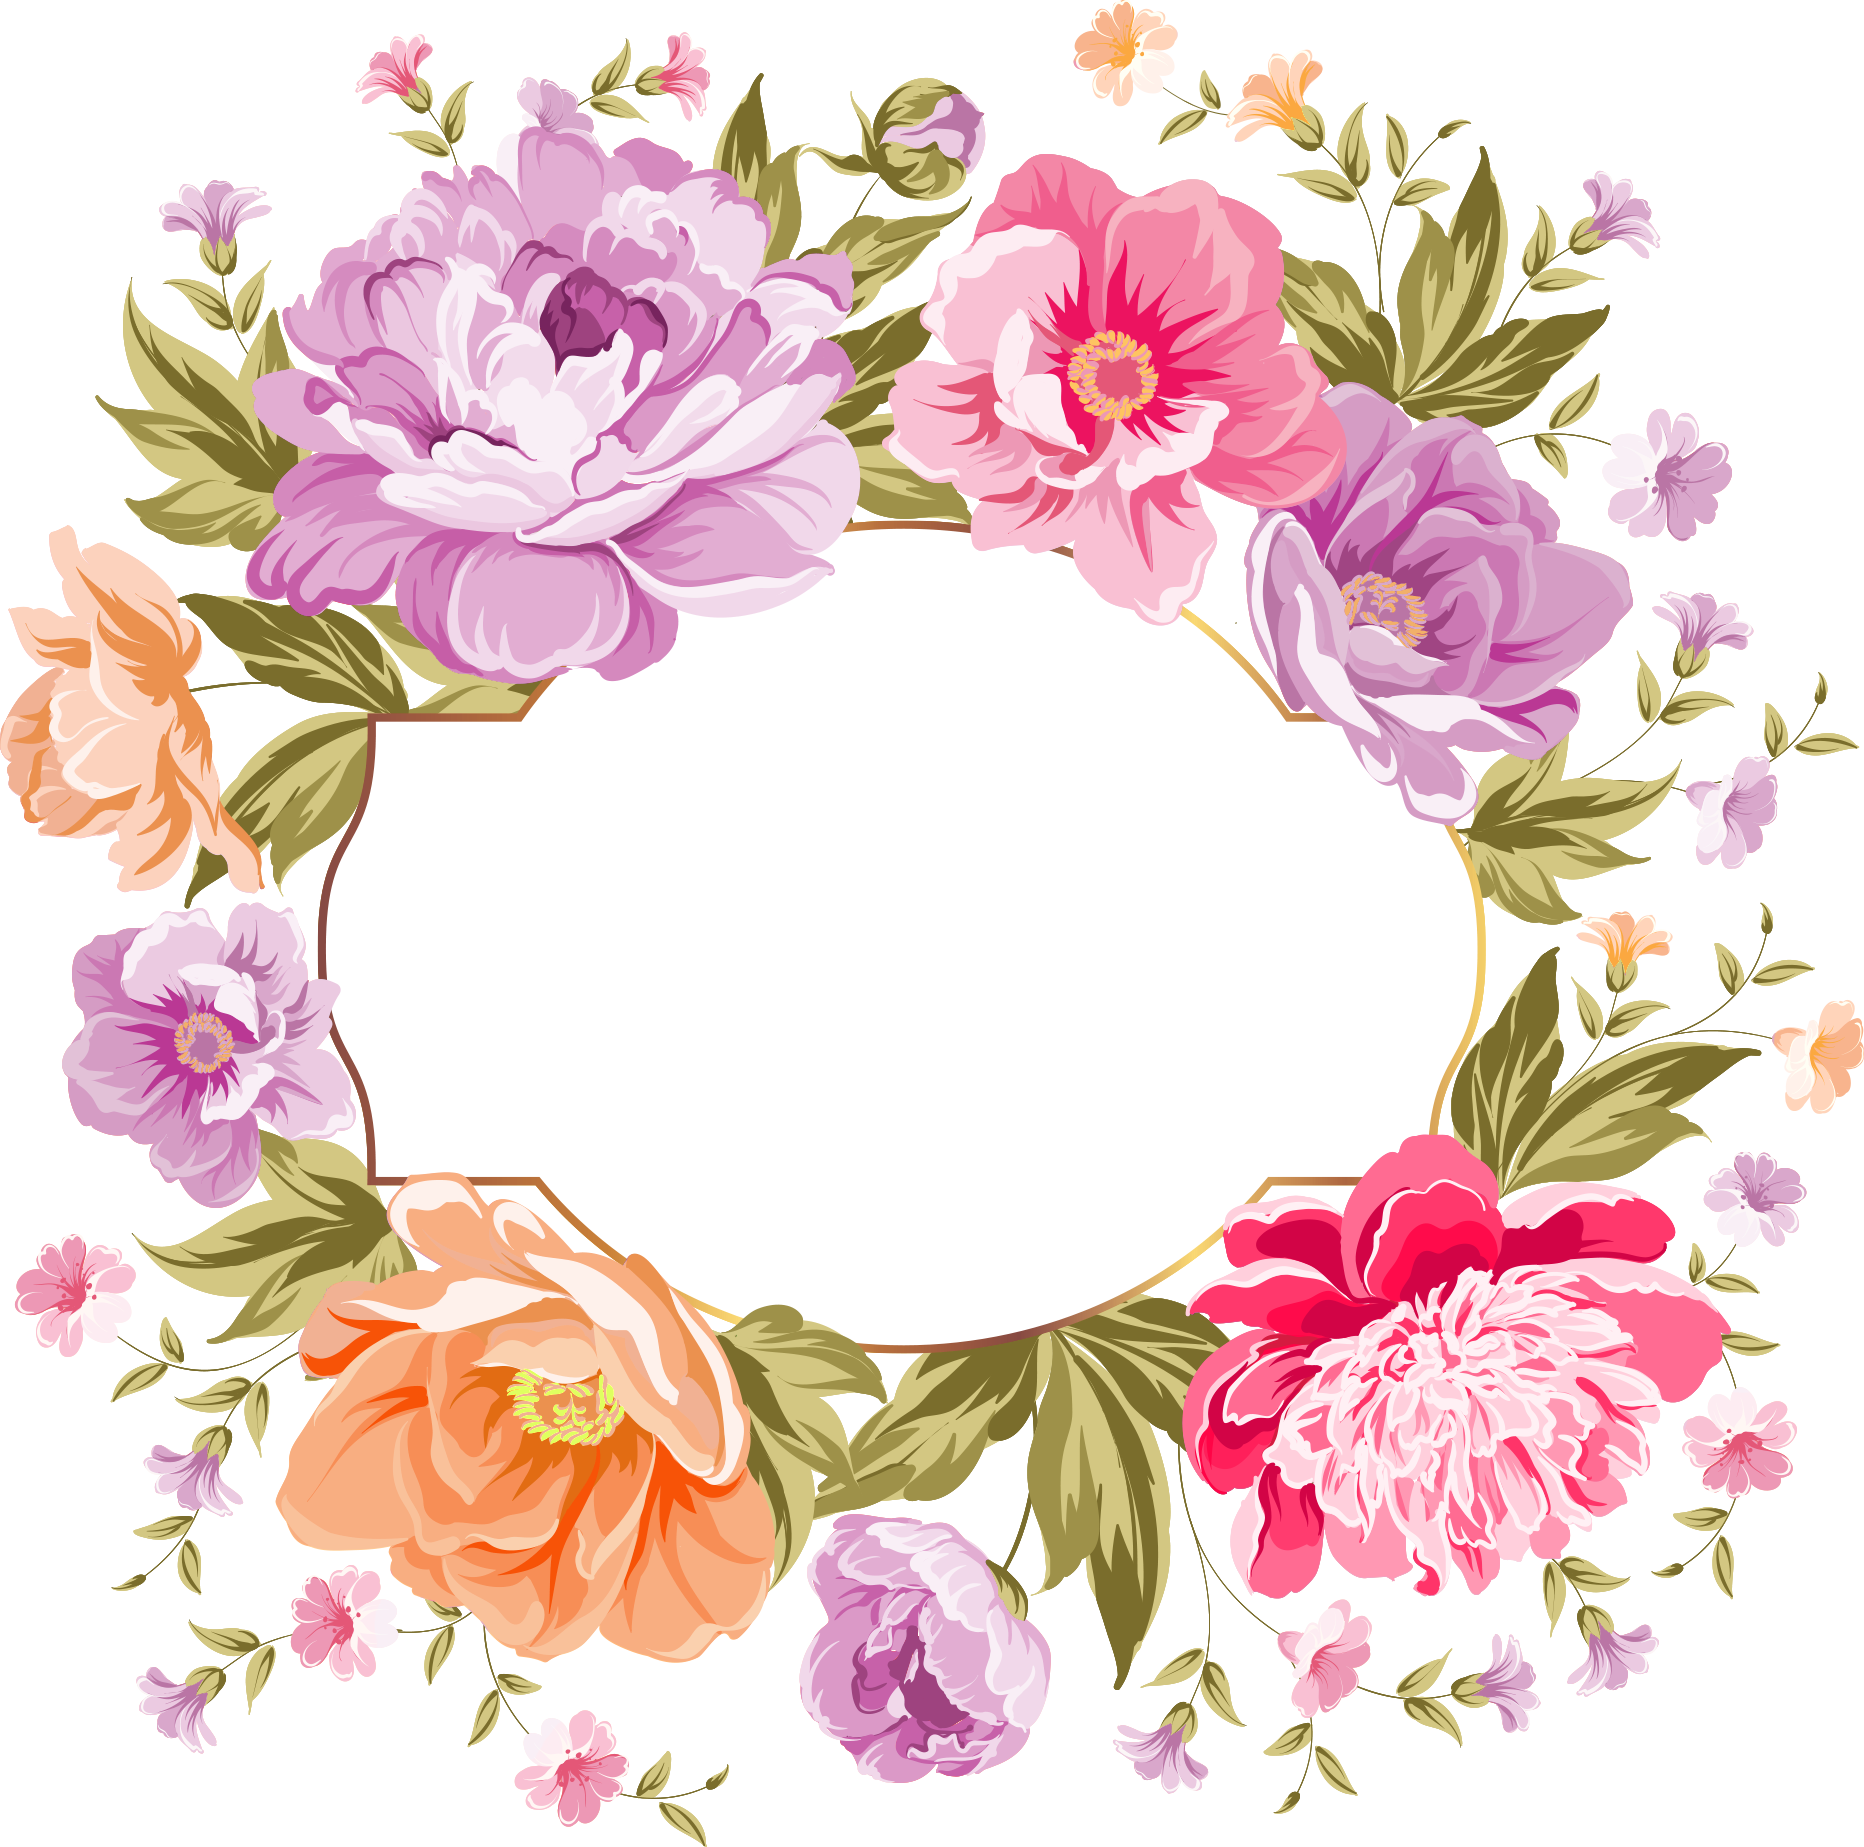 Watercolor flowers elements ornaments png free. Http d top net